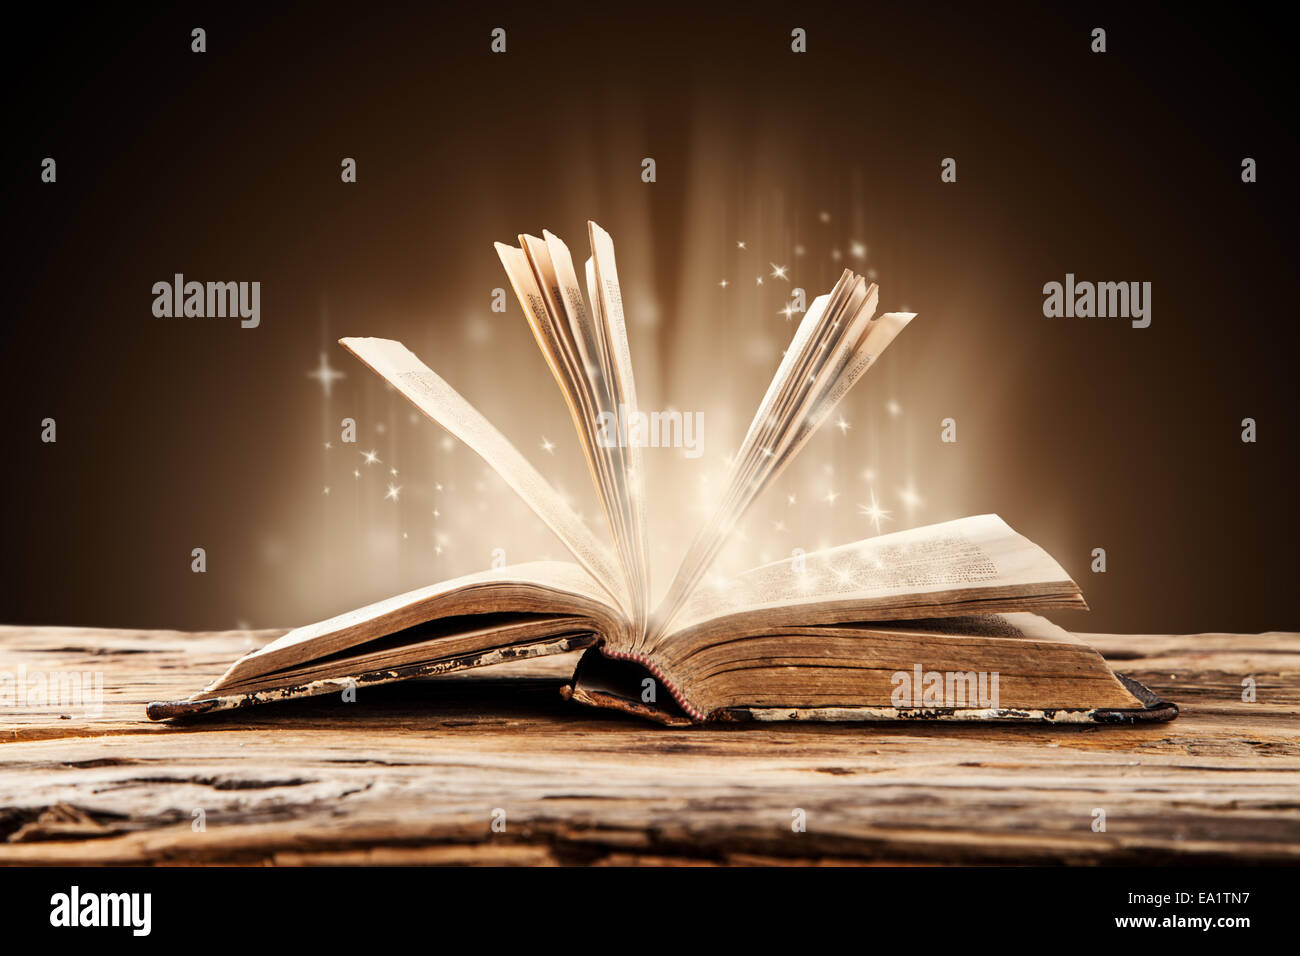 Old book on wooden planks with blur shimmer background - Stock Image